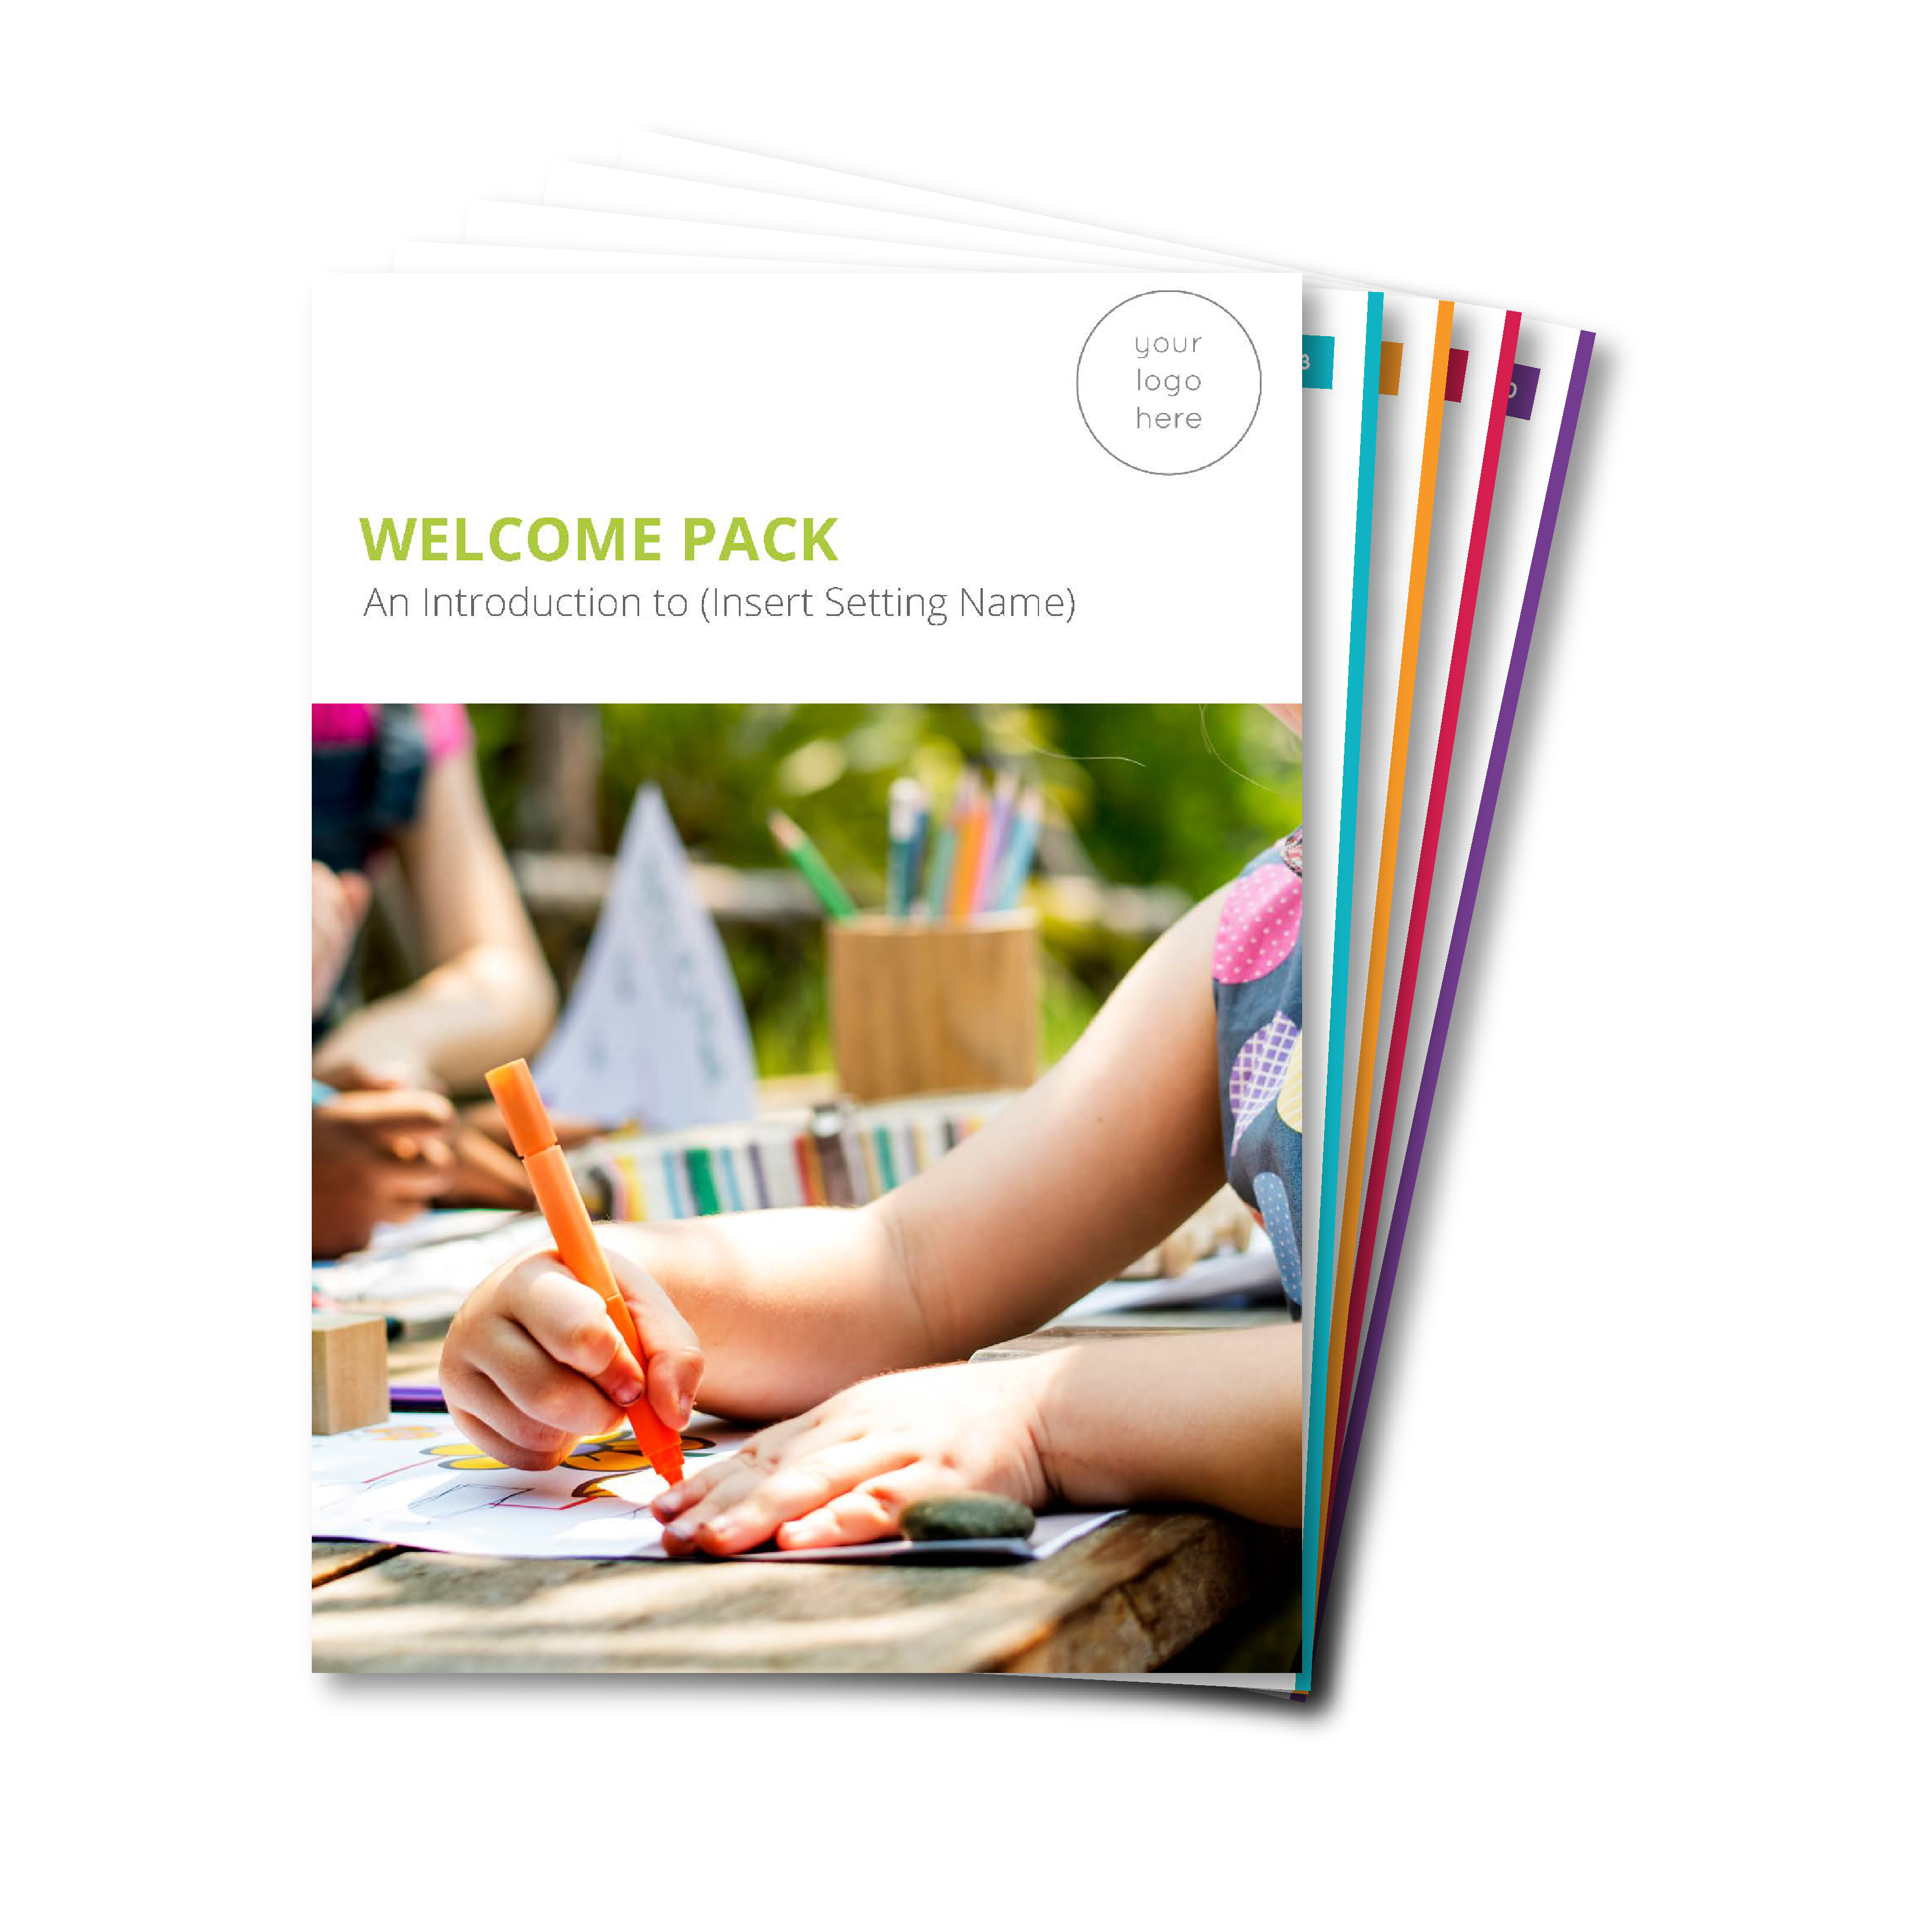 Welcome Pack Booklet for Parents